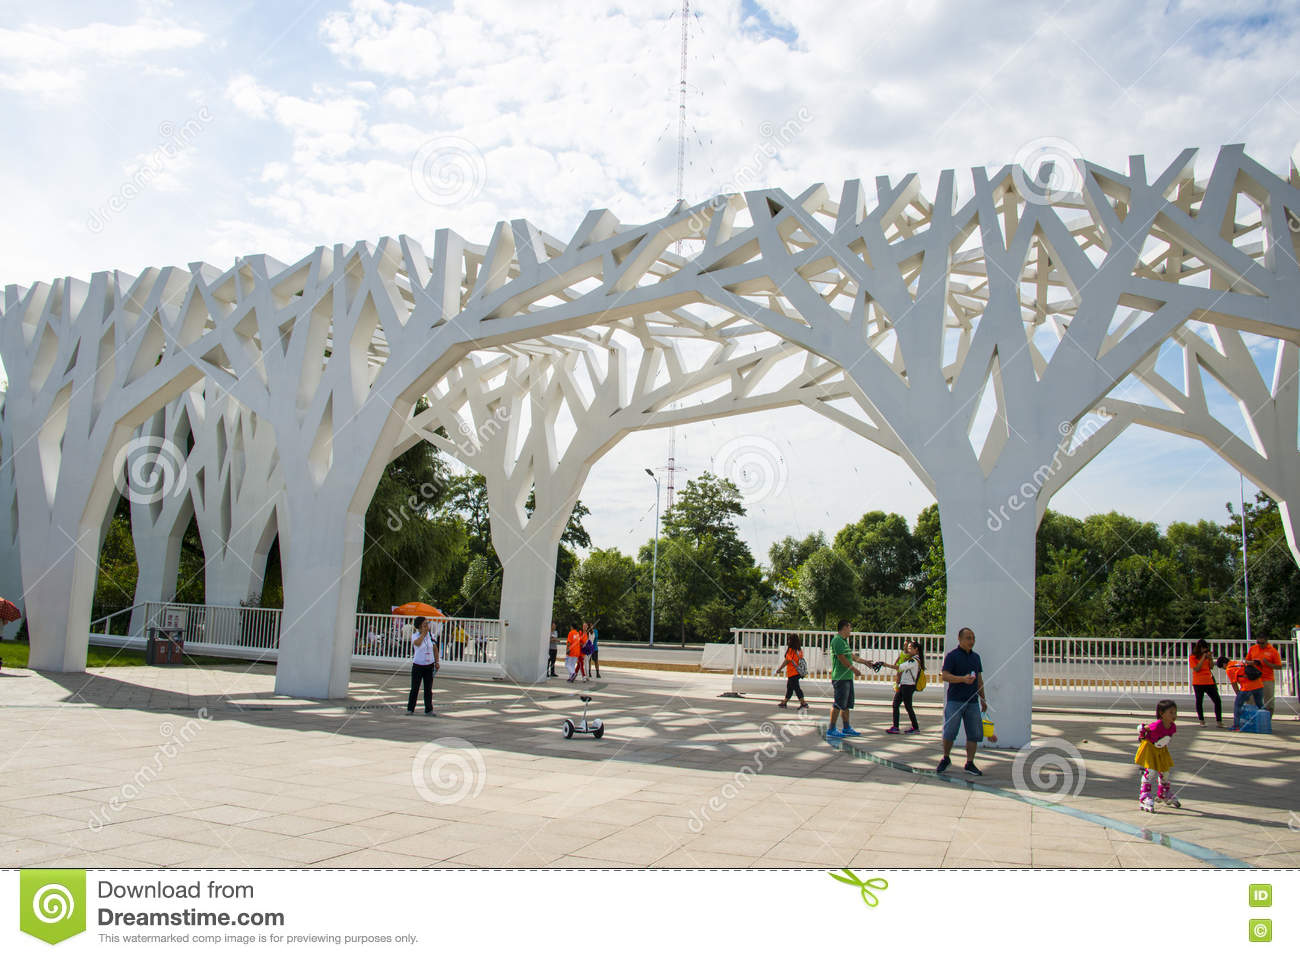 asia-china-beijing-changyang-park-landscape-architecture-park-gate-chinese-city-parks-modern-architectural-style<-gate<tree-77060600 Urban Style Design